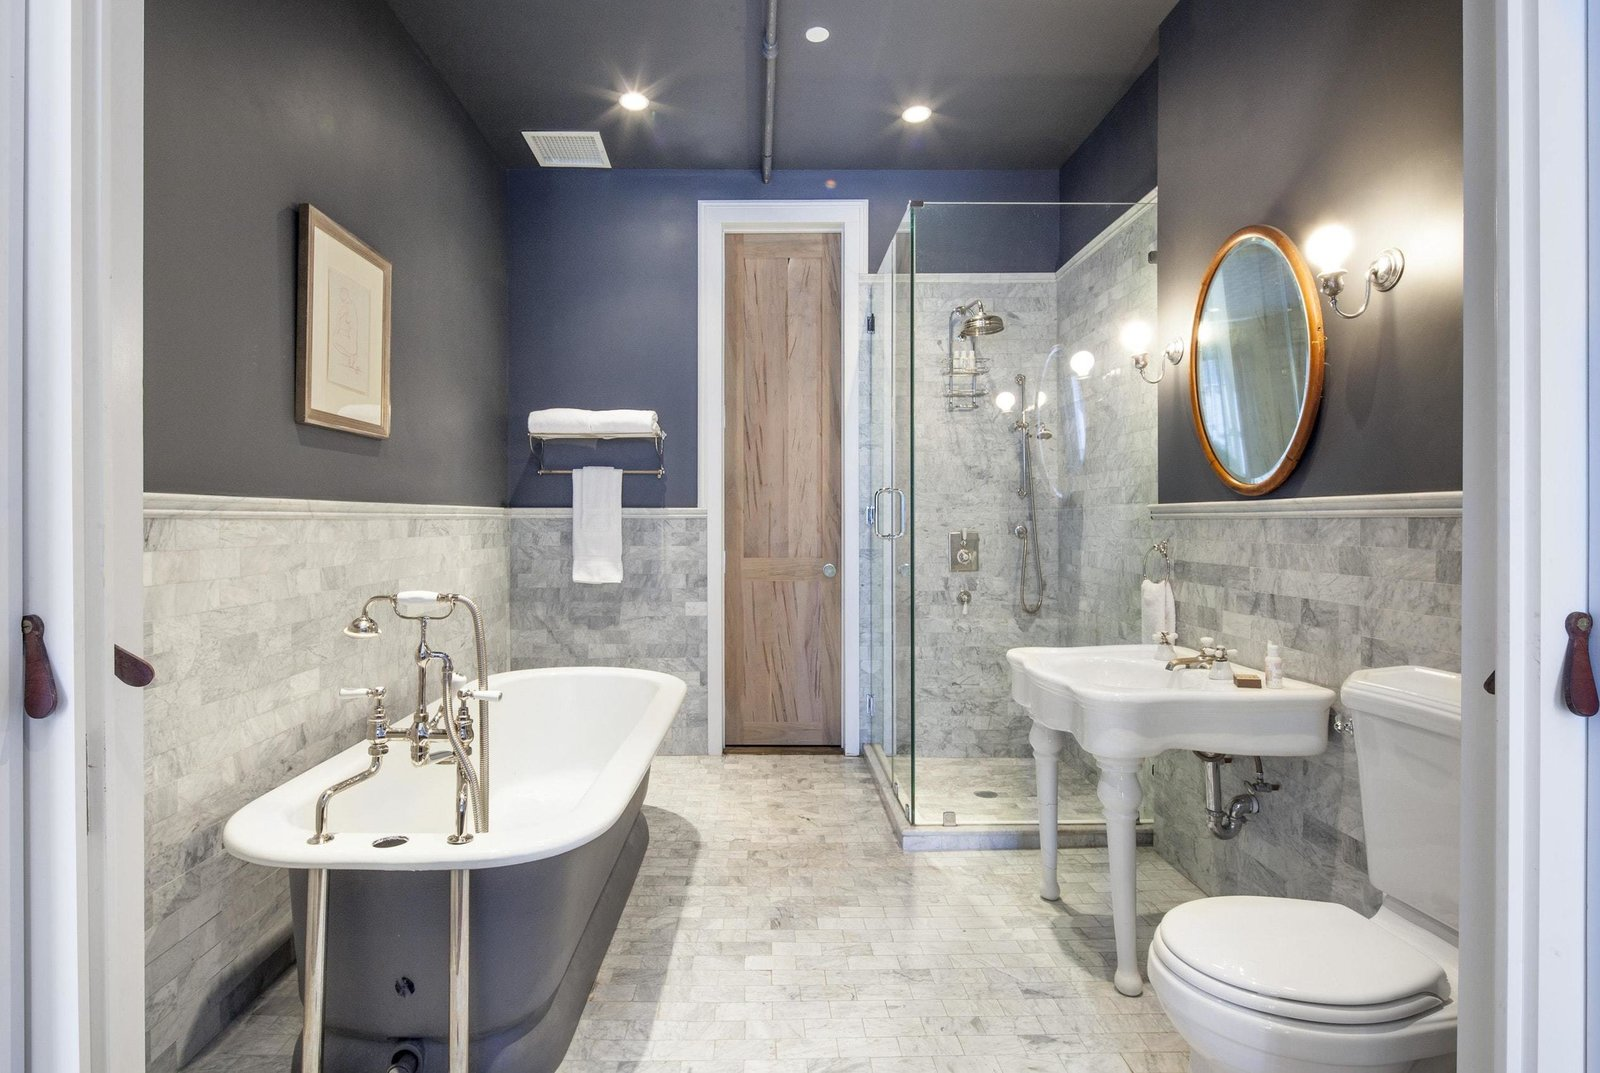 Bath Room, Recessed Lighting, Two Piece Toilet, Freestanding Tub, Pedestal Sink, Wall Mount Sink, Marble Wall, Enclosed Shower, Corner Shower, and Marble Floor  Prince Street